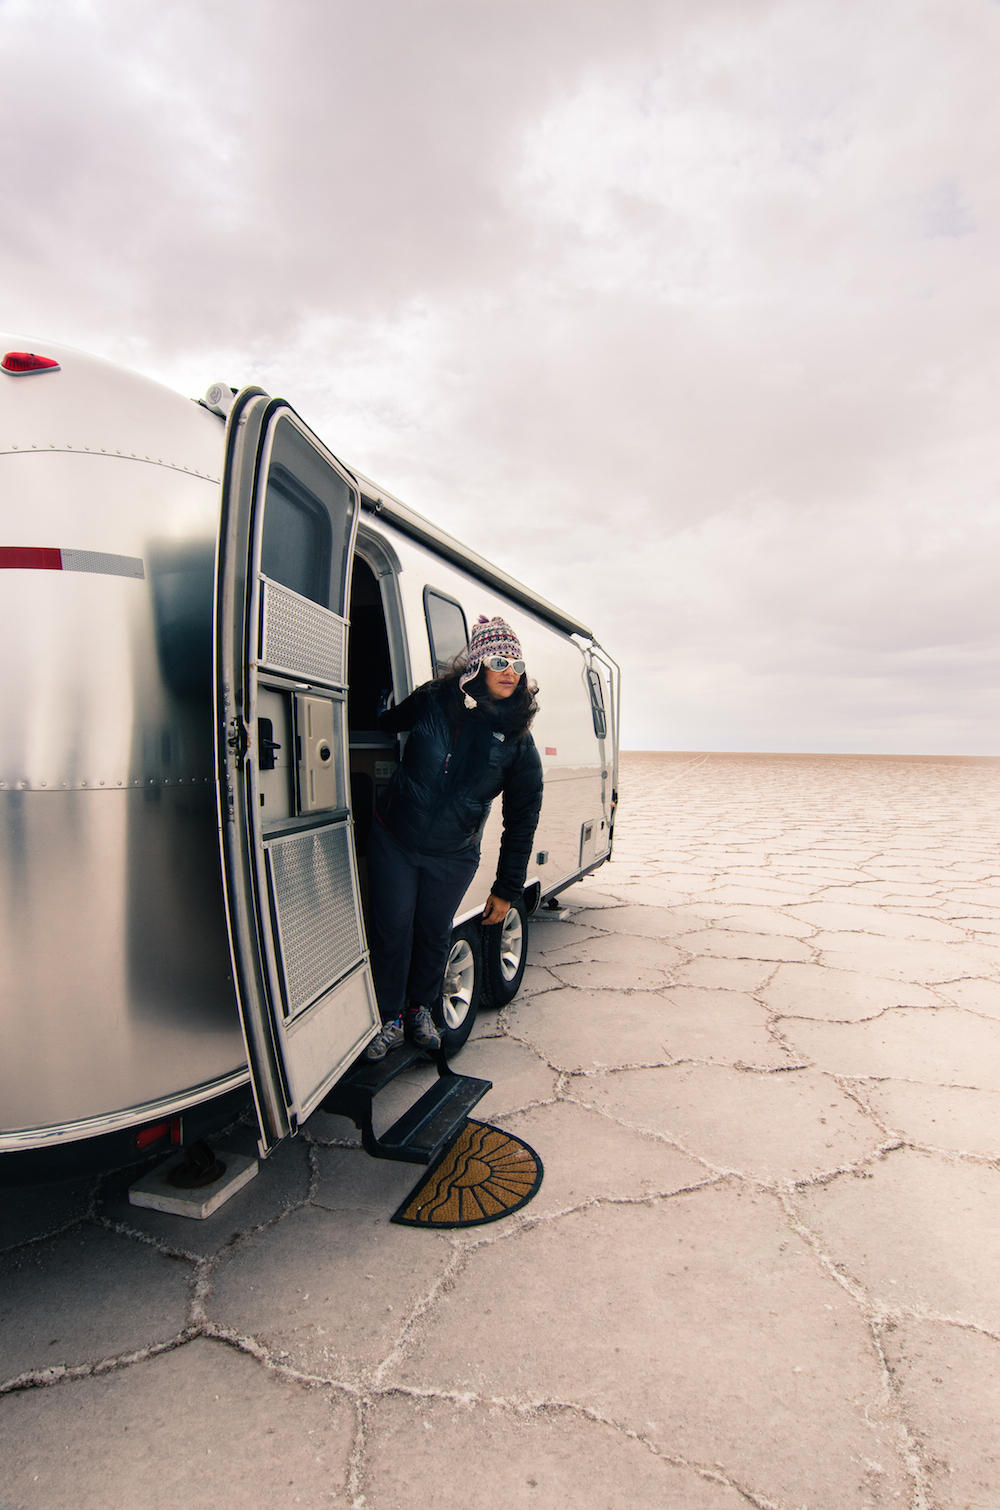 uyuni-salt-flats-bolivia-freelance-life-airstream-camping-cox-and-kings-jenny-adams-freelance-writer-daniel-scheffler-lanee-lee-voyage-vixens-buddha-drinks-fanta-2